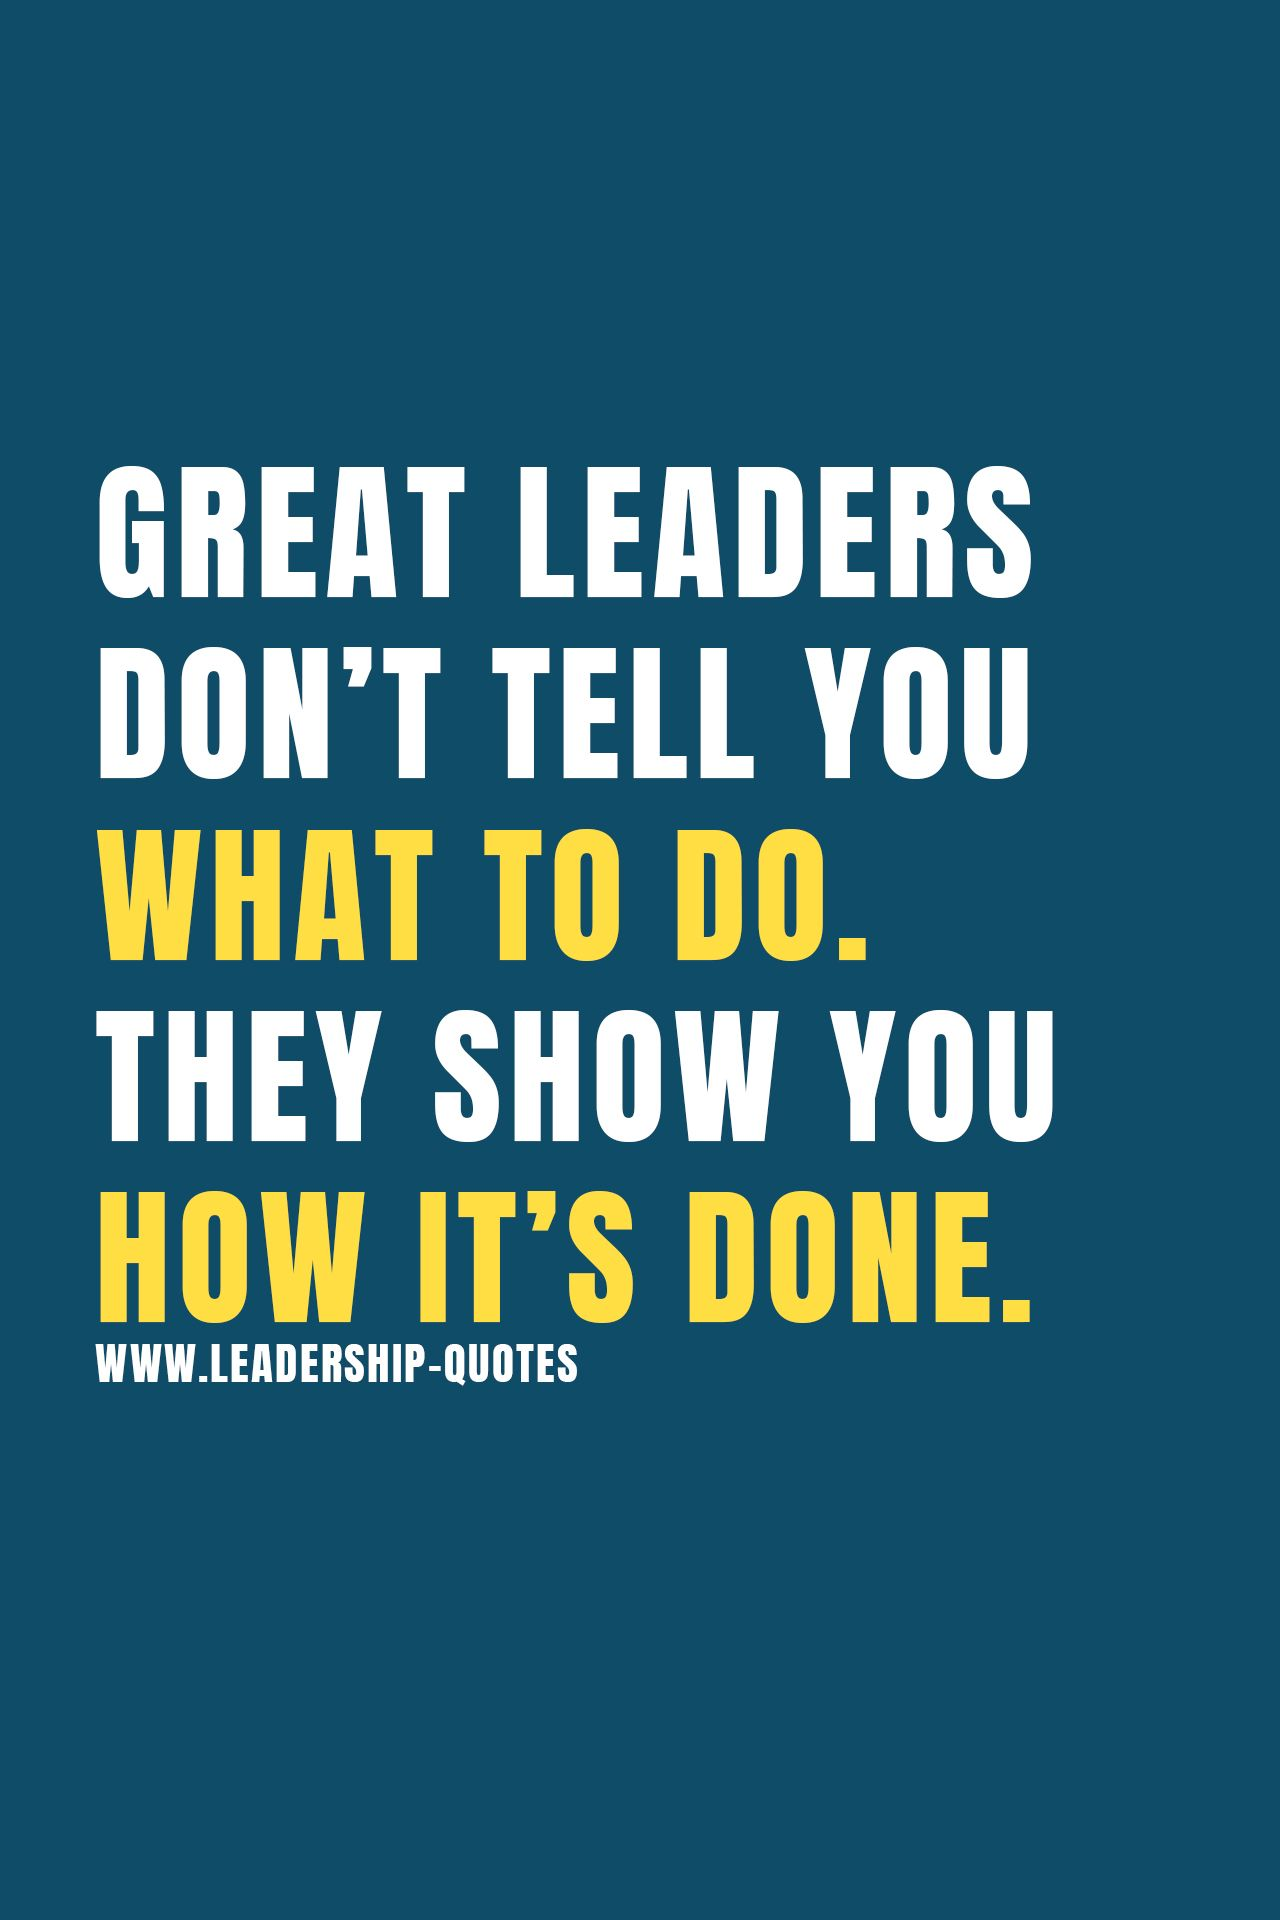 Quotes About Great Leaders Great Leaders Don't Tell You What To Dothey Show You How It's